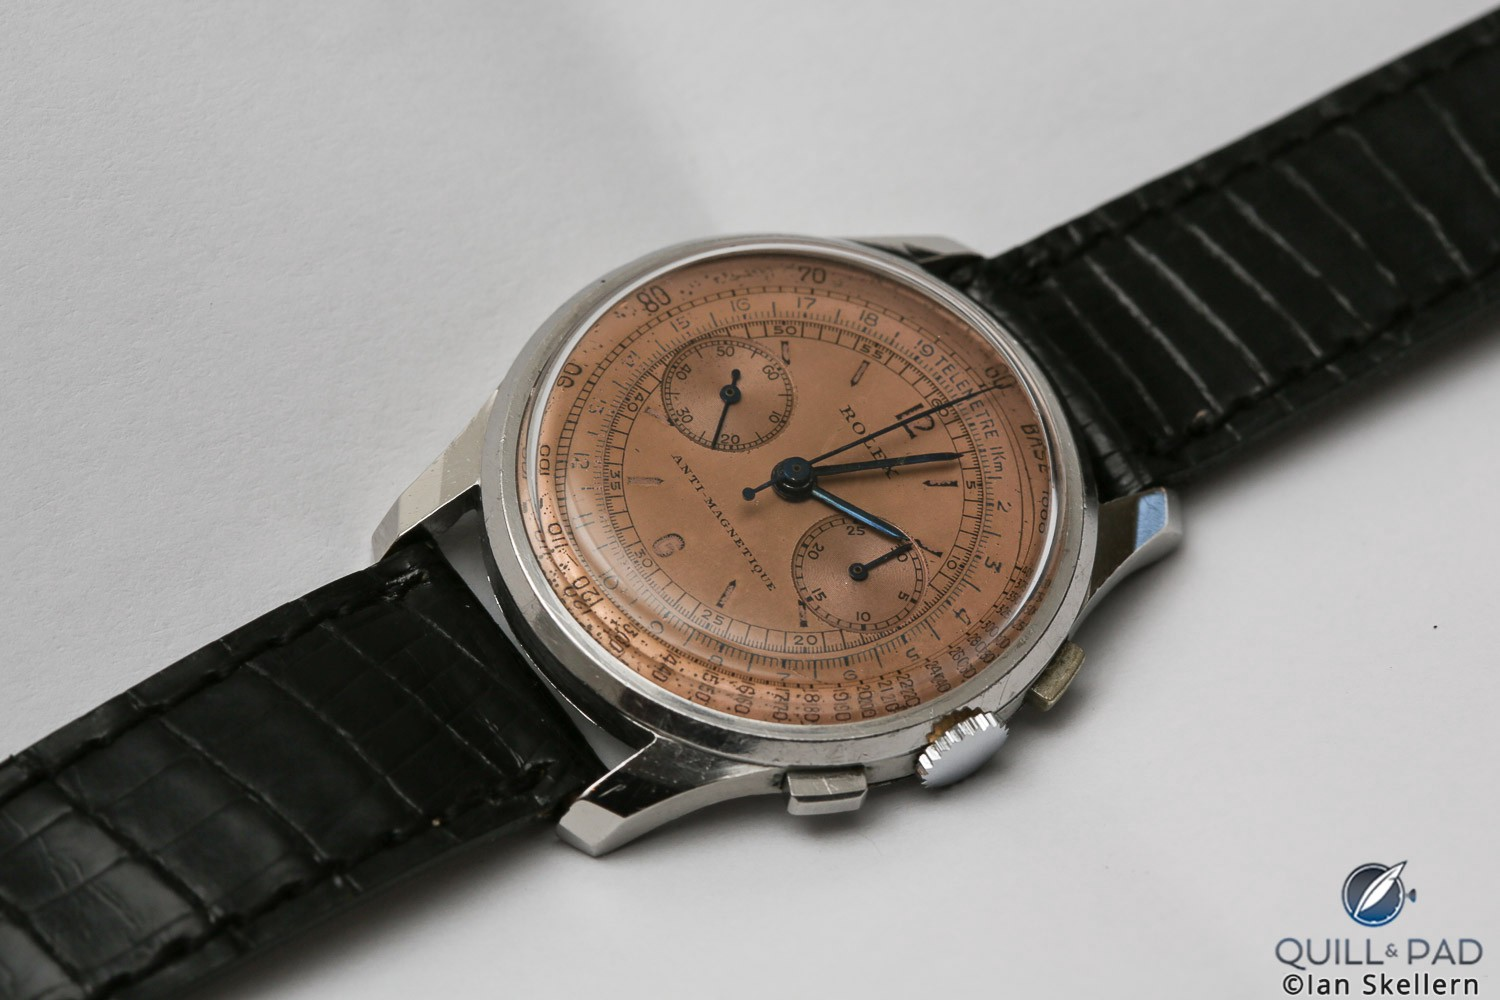 Rolex Reference 3834 from Gerd-Rüdiger Lang's extensive chronograph collection